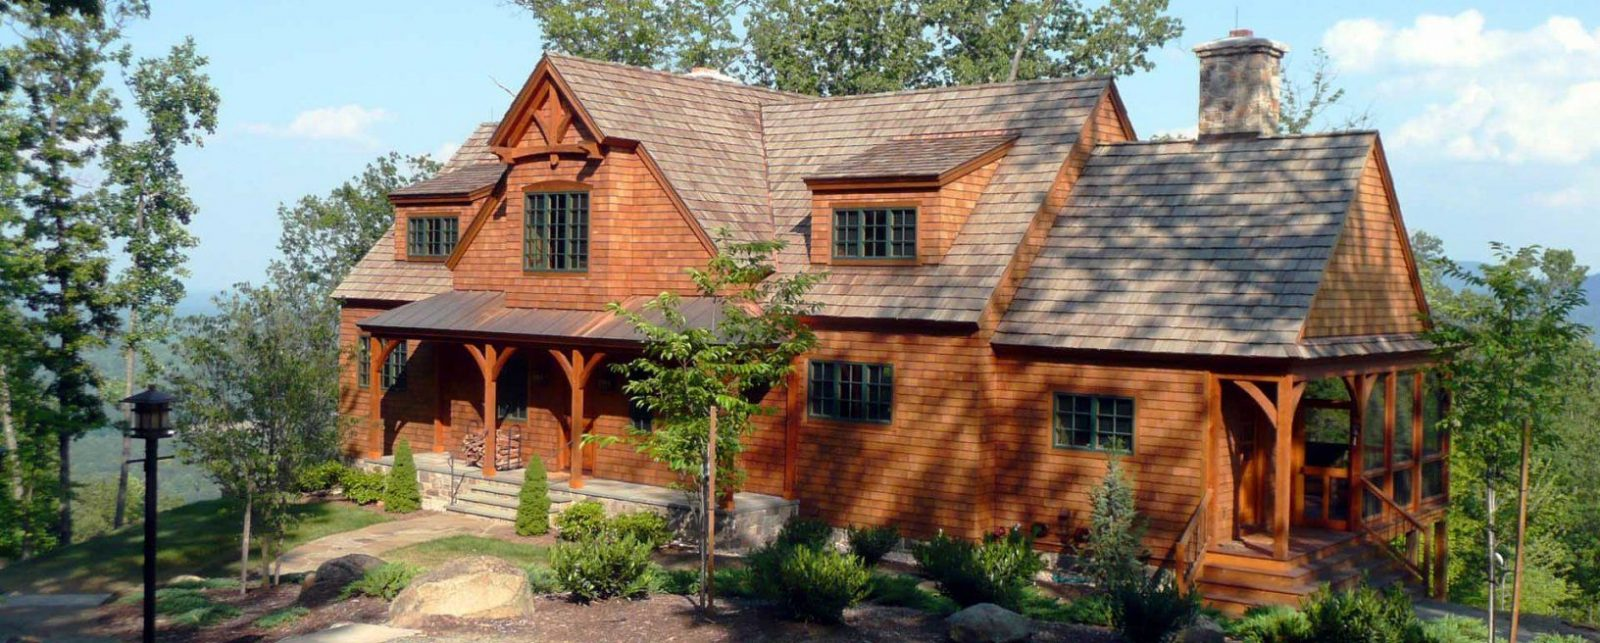 House Plan Timber Frame Homes  Post And Beam Plans Timberpeg Post von Mill Creek Post And Beam Bild